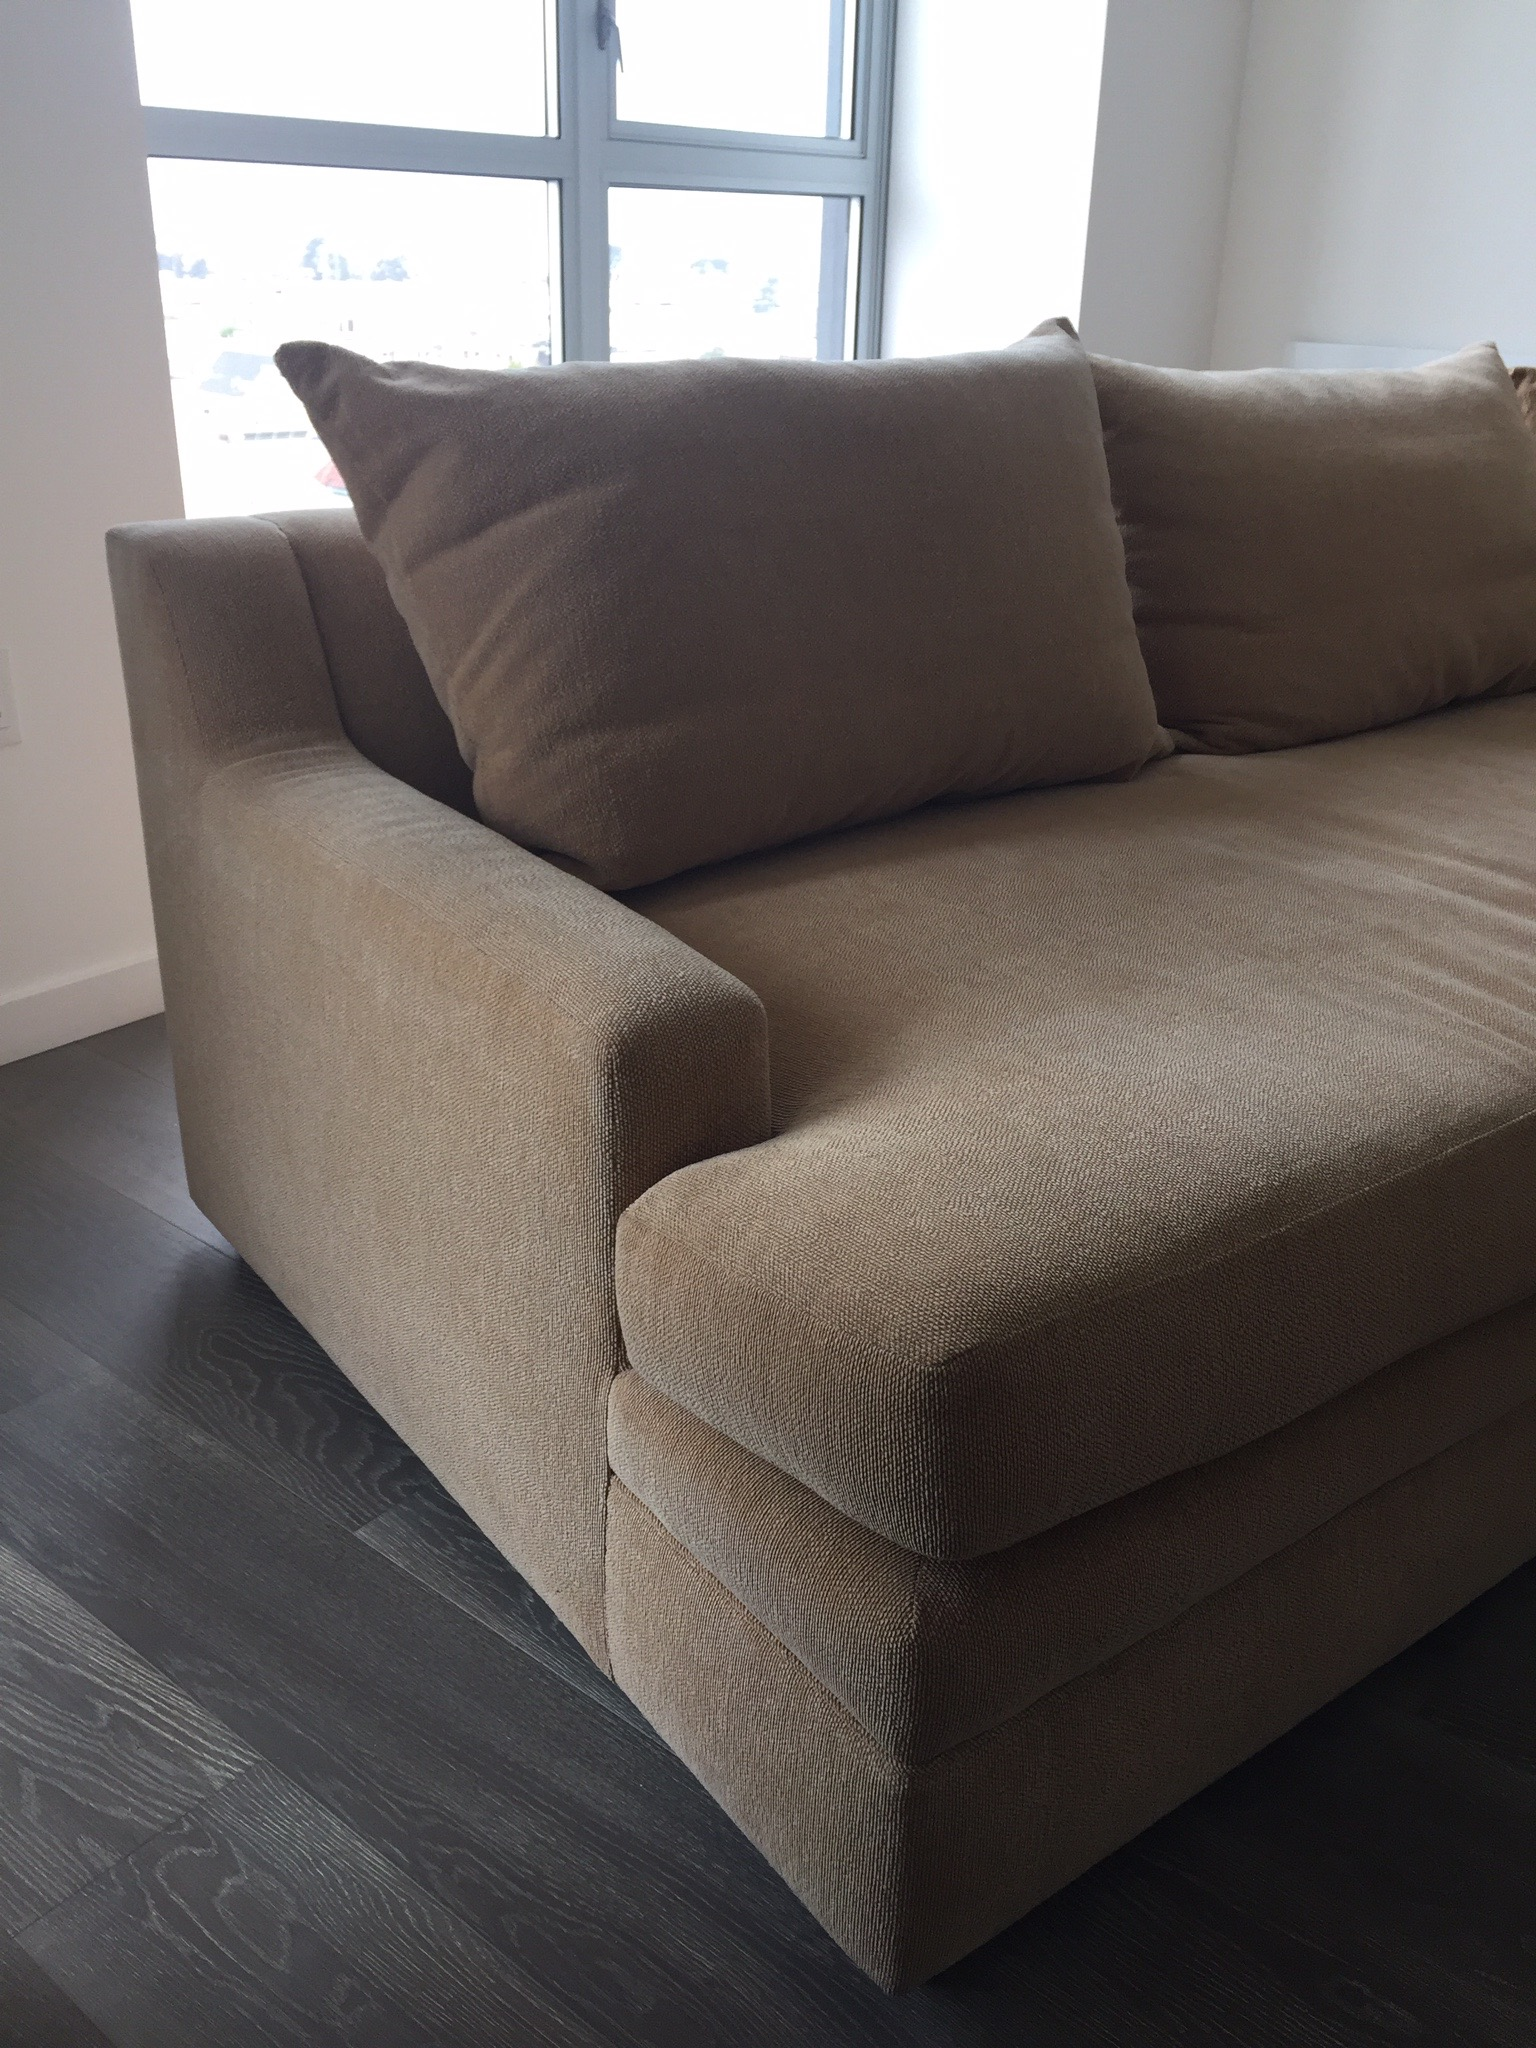 Exceptional Kroll Furniture Custom Sofa Sectional   Image 4 Of 10